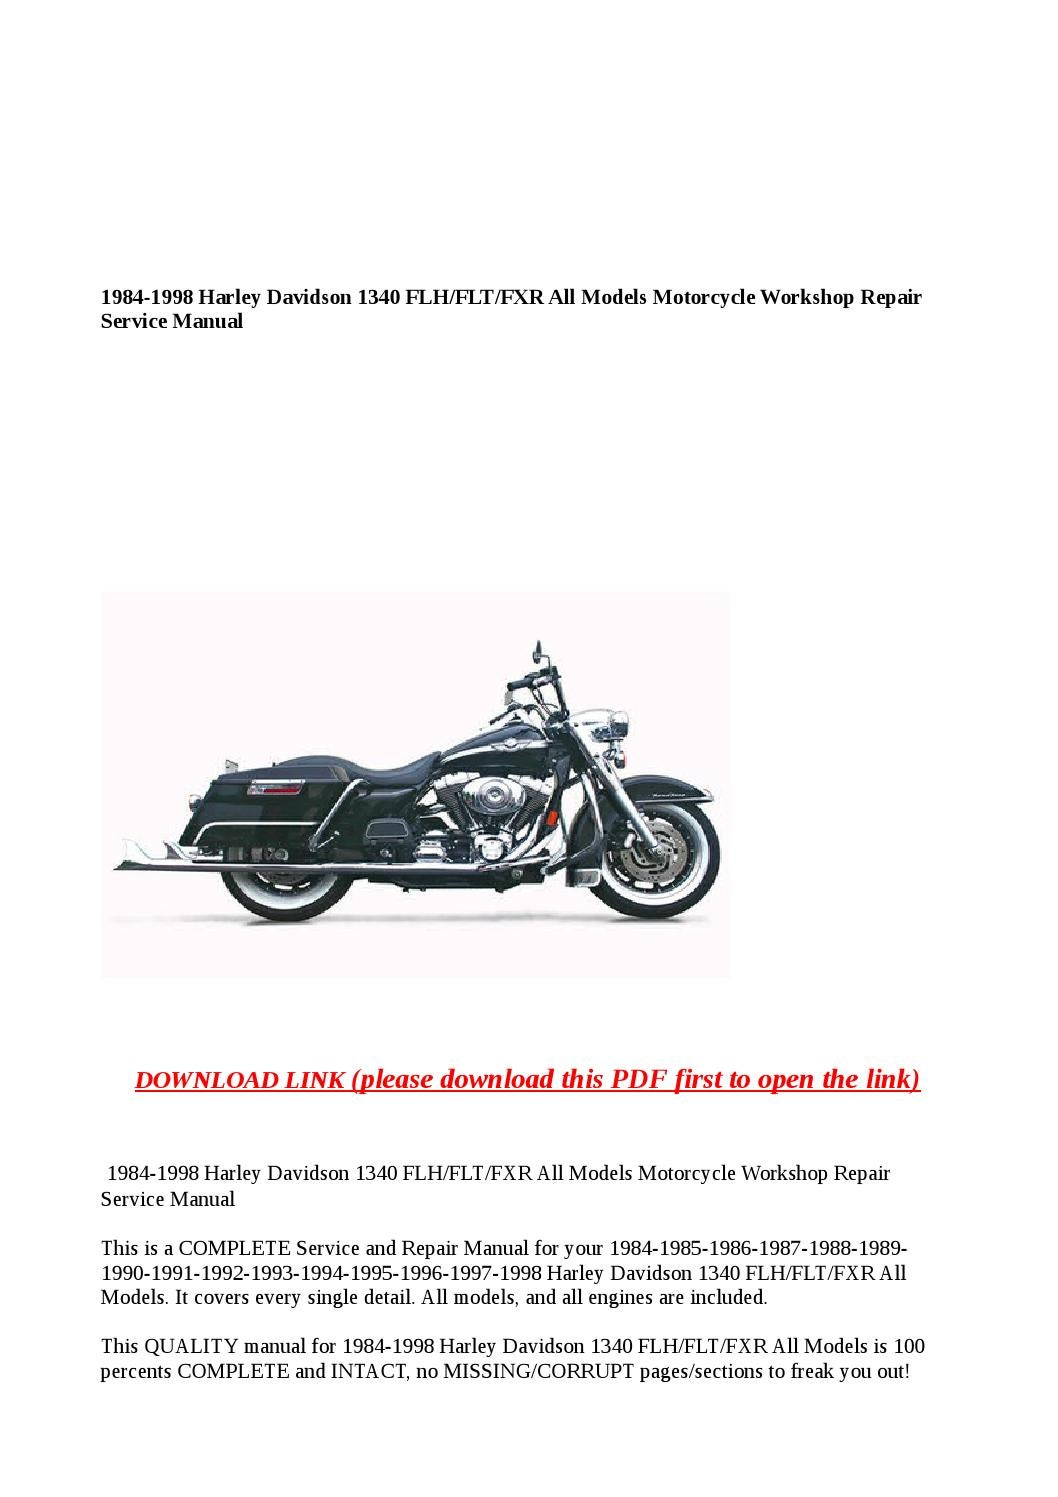 1984 1998 harley davidson 1340 flh flt fxr all models motorcycle workshop  repair service manual by buhbu - issuu